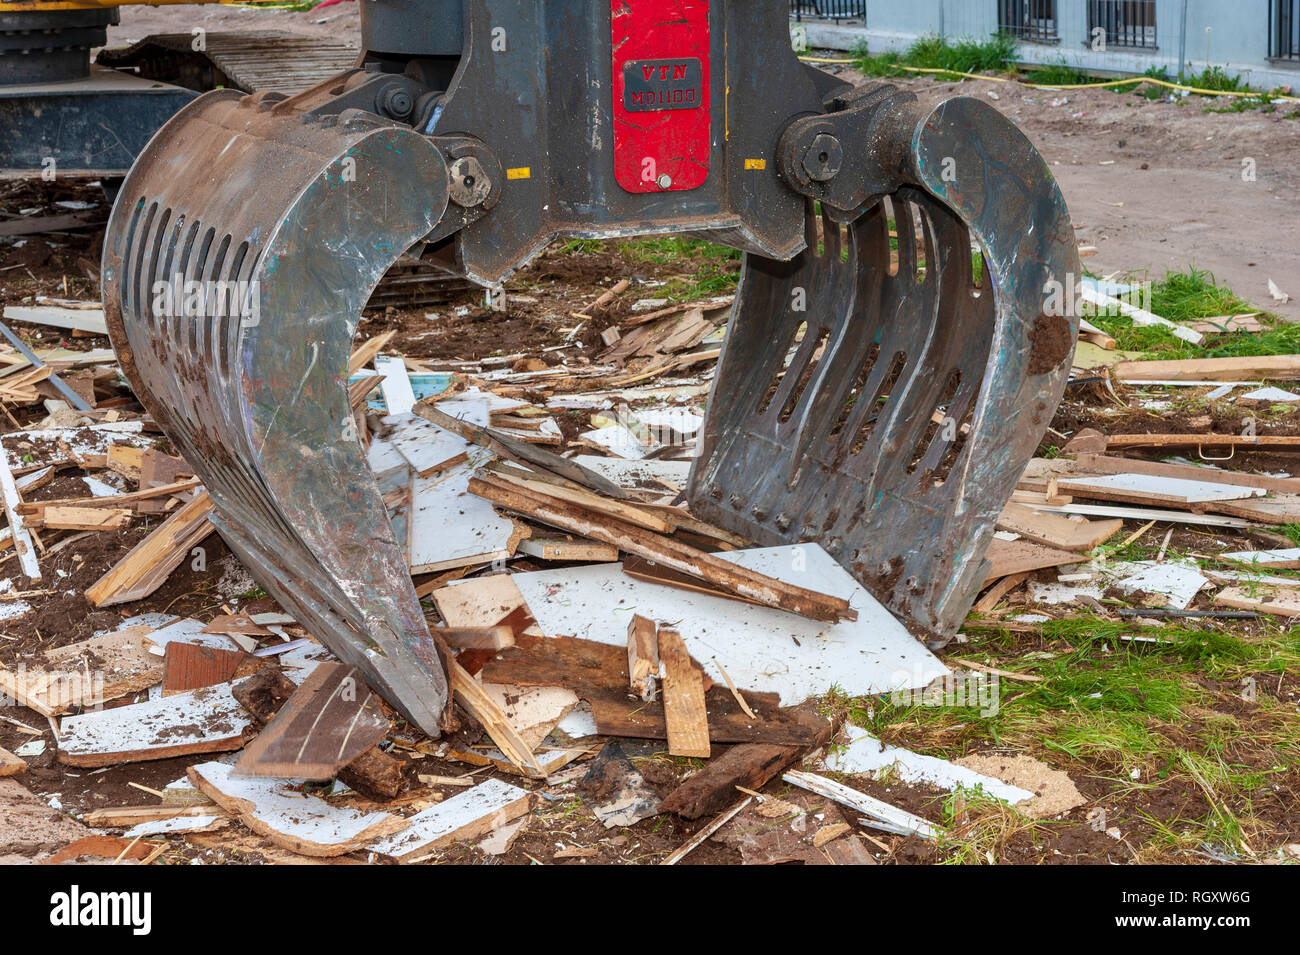 Demolition site. Sorting Grabs used to sort waste on a demolition site. Here wood piece recovery - Stock Image